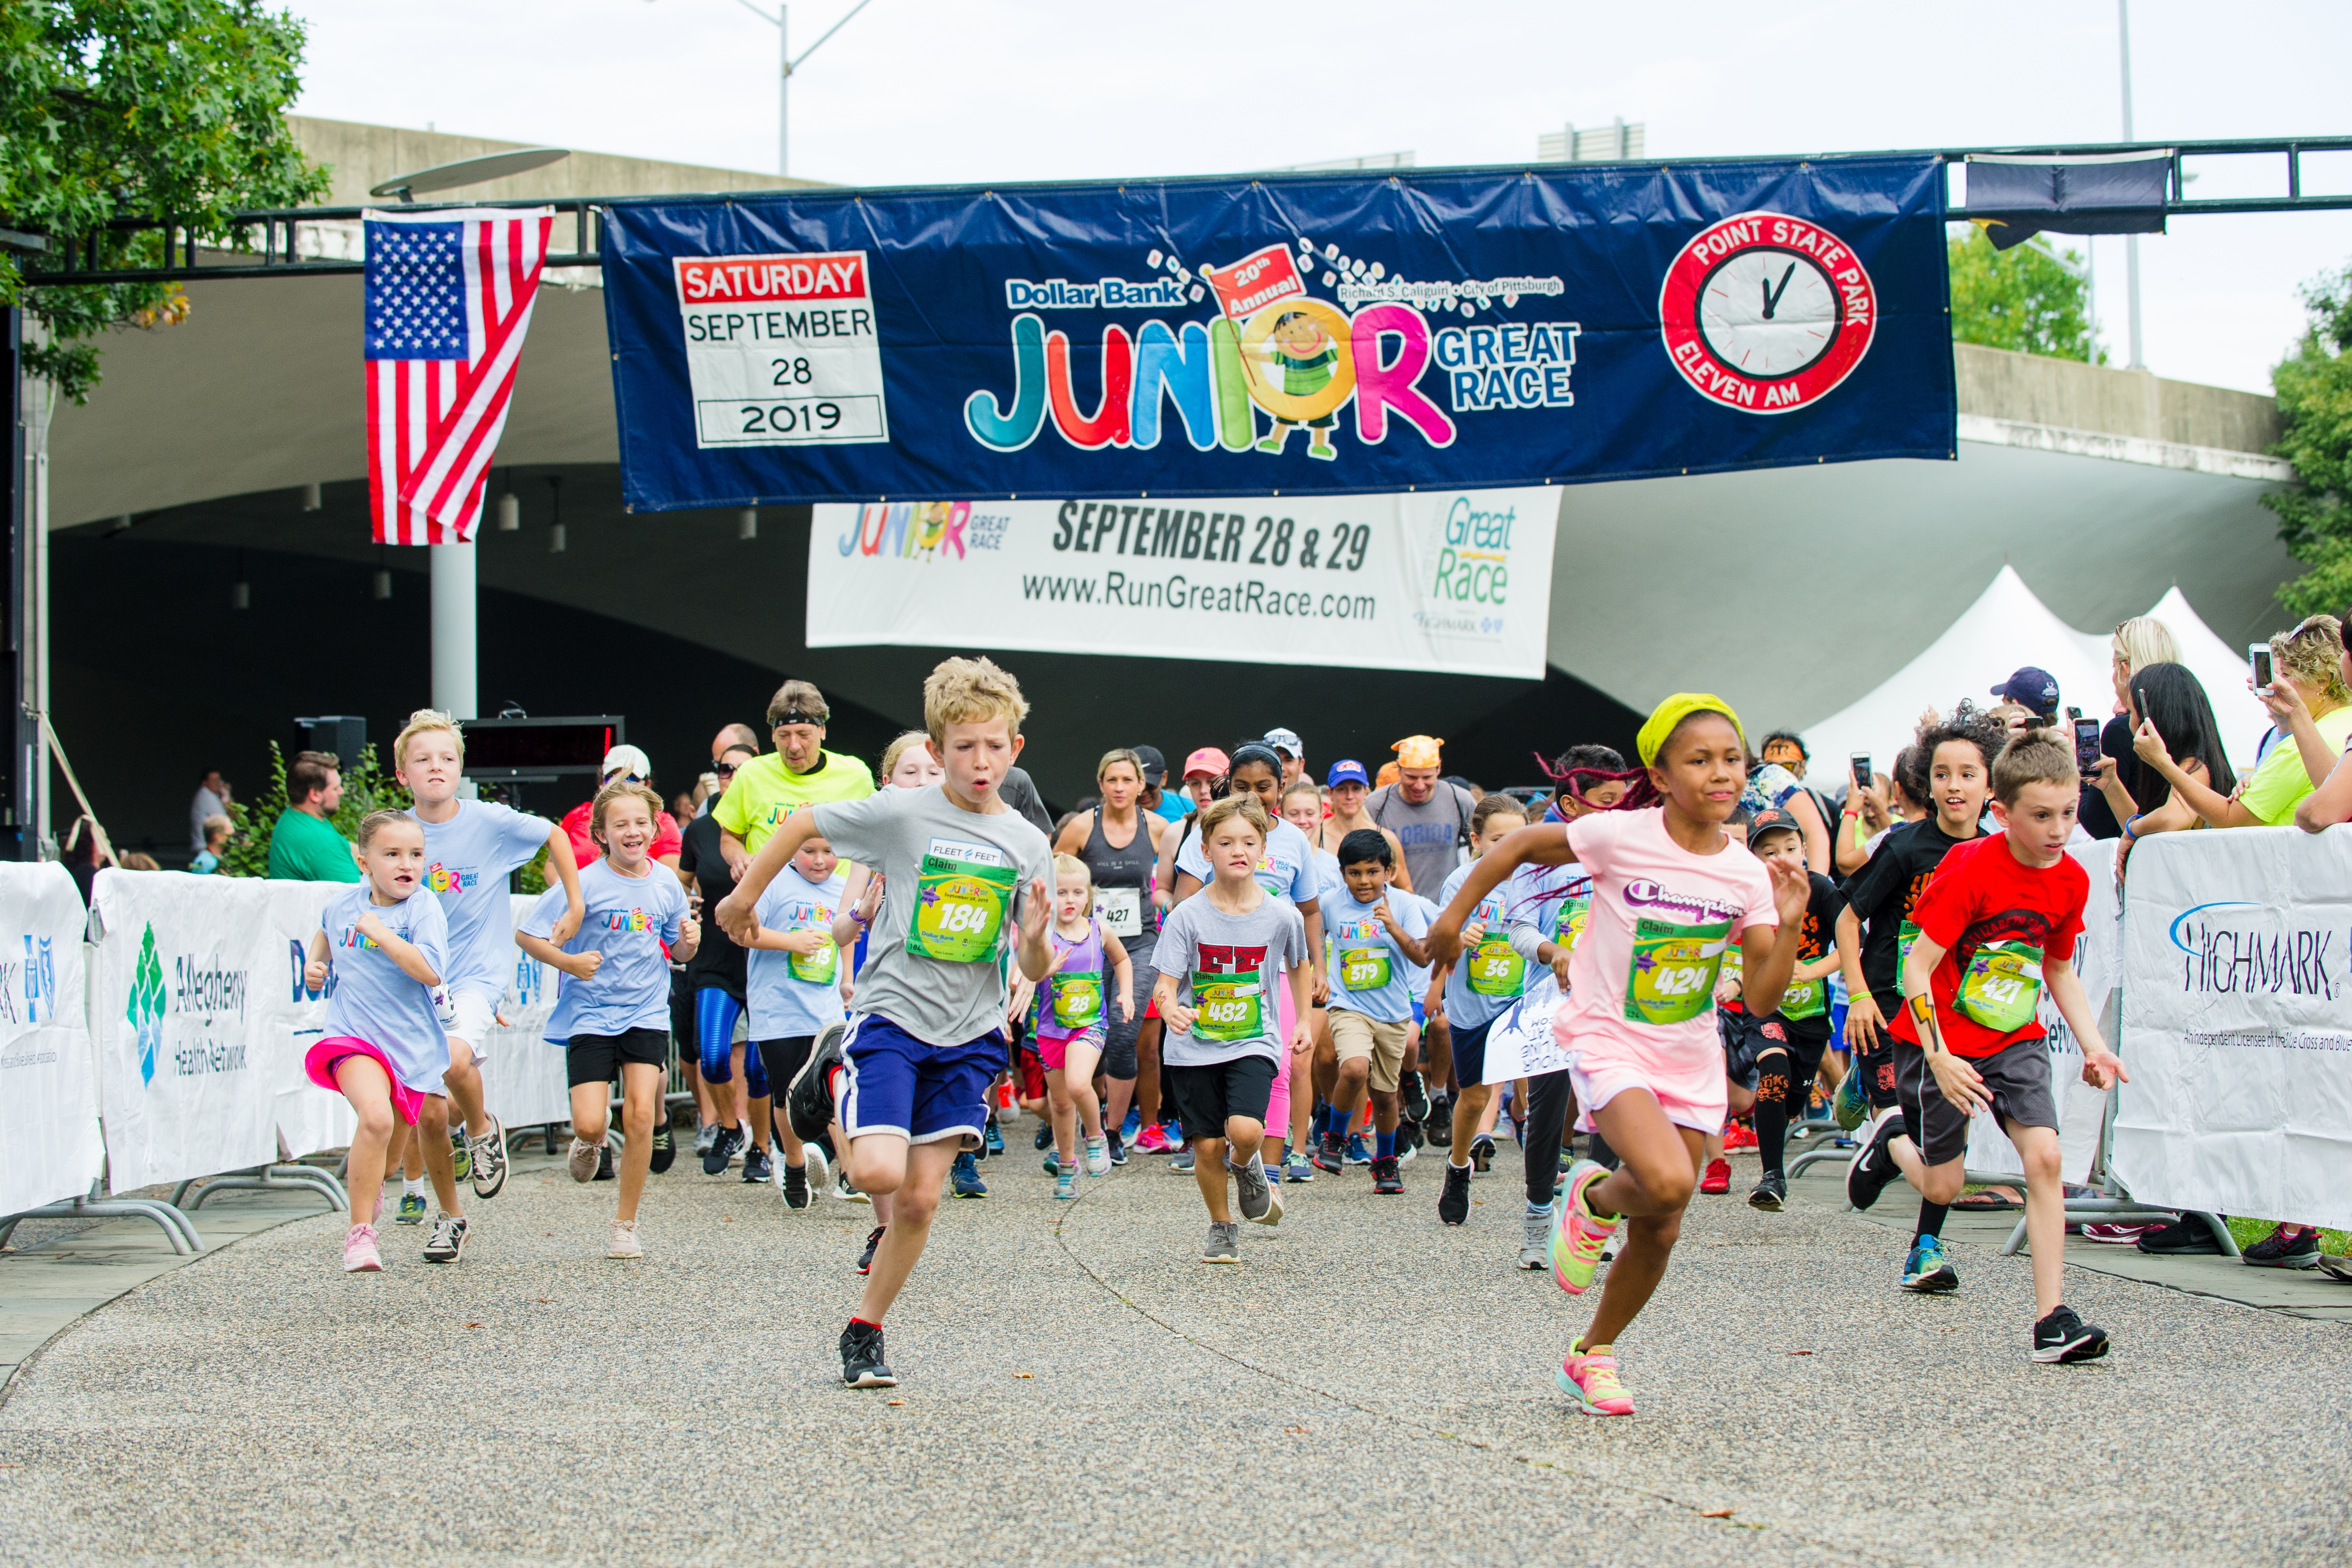 A large group of children running in the Dollar Bank Junior Great Race, which consists of the One-Mile Family Fun Run, Tot Trot, and Diaper Dash